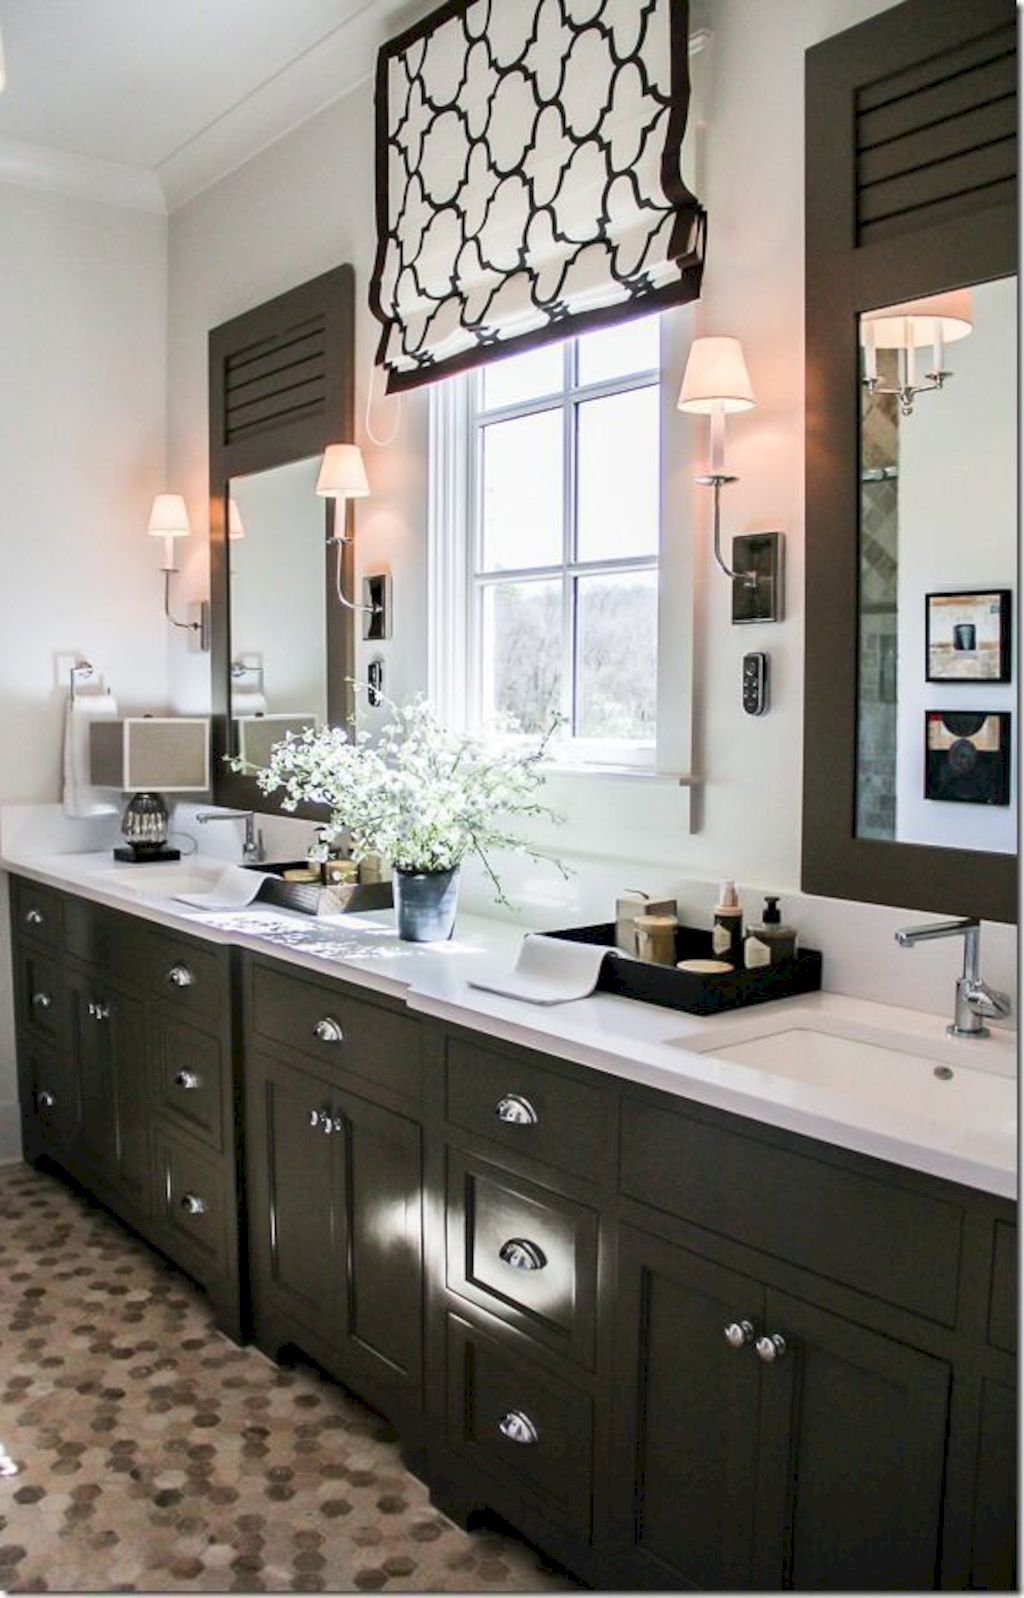 Beautiful bathroom update with eclectic patterned tiles and ethnic rugs very efficient to improve bathroom floor design Image 30